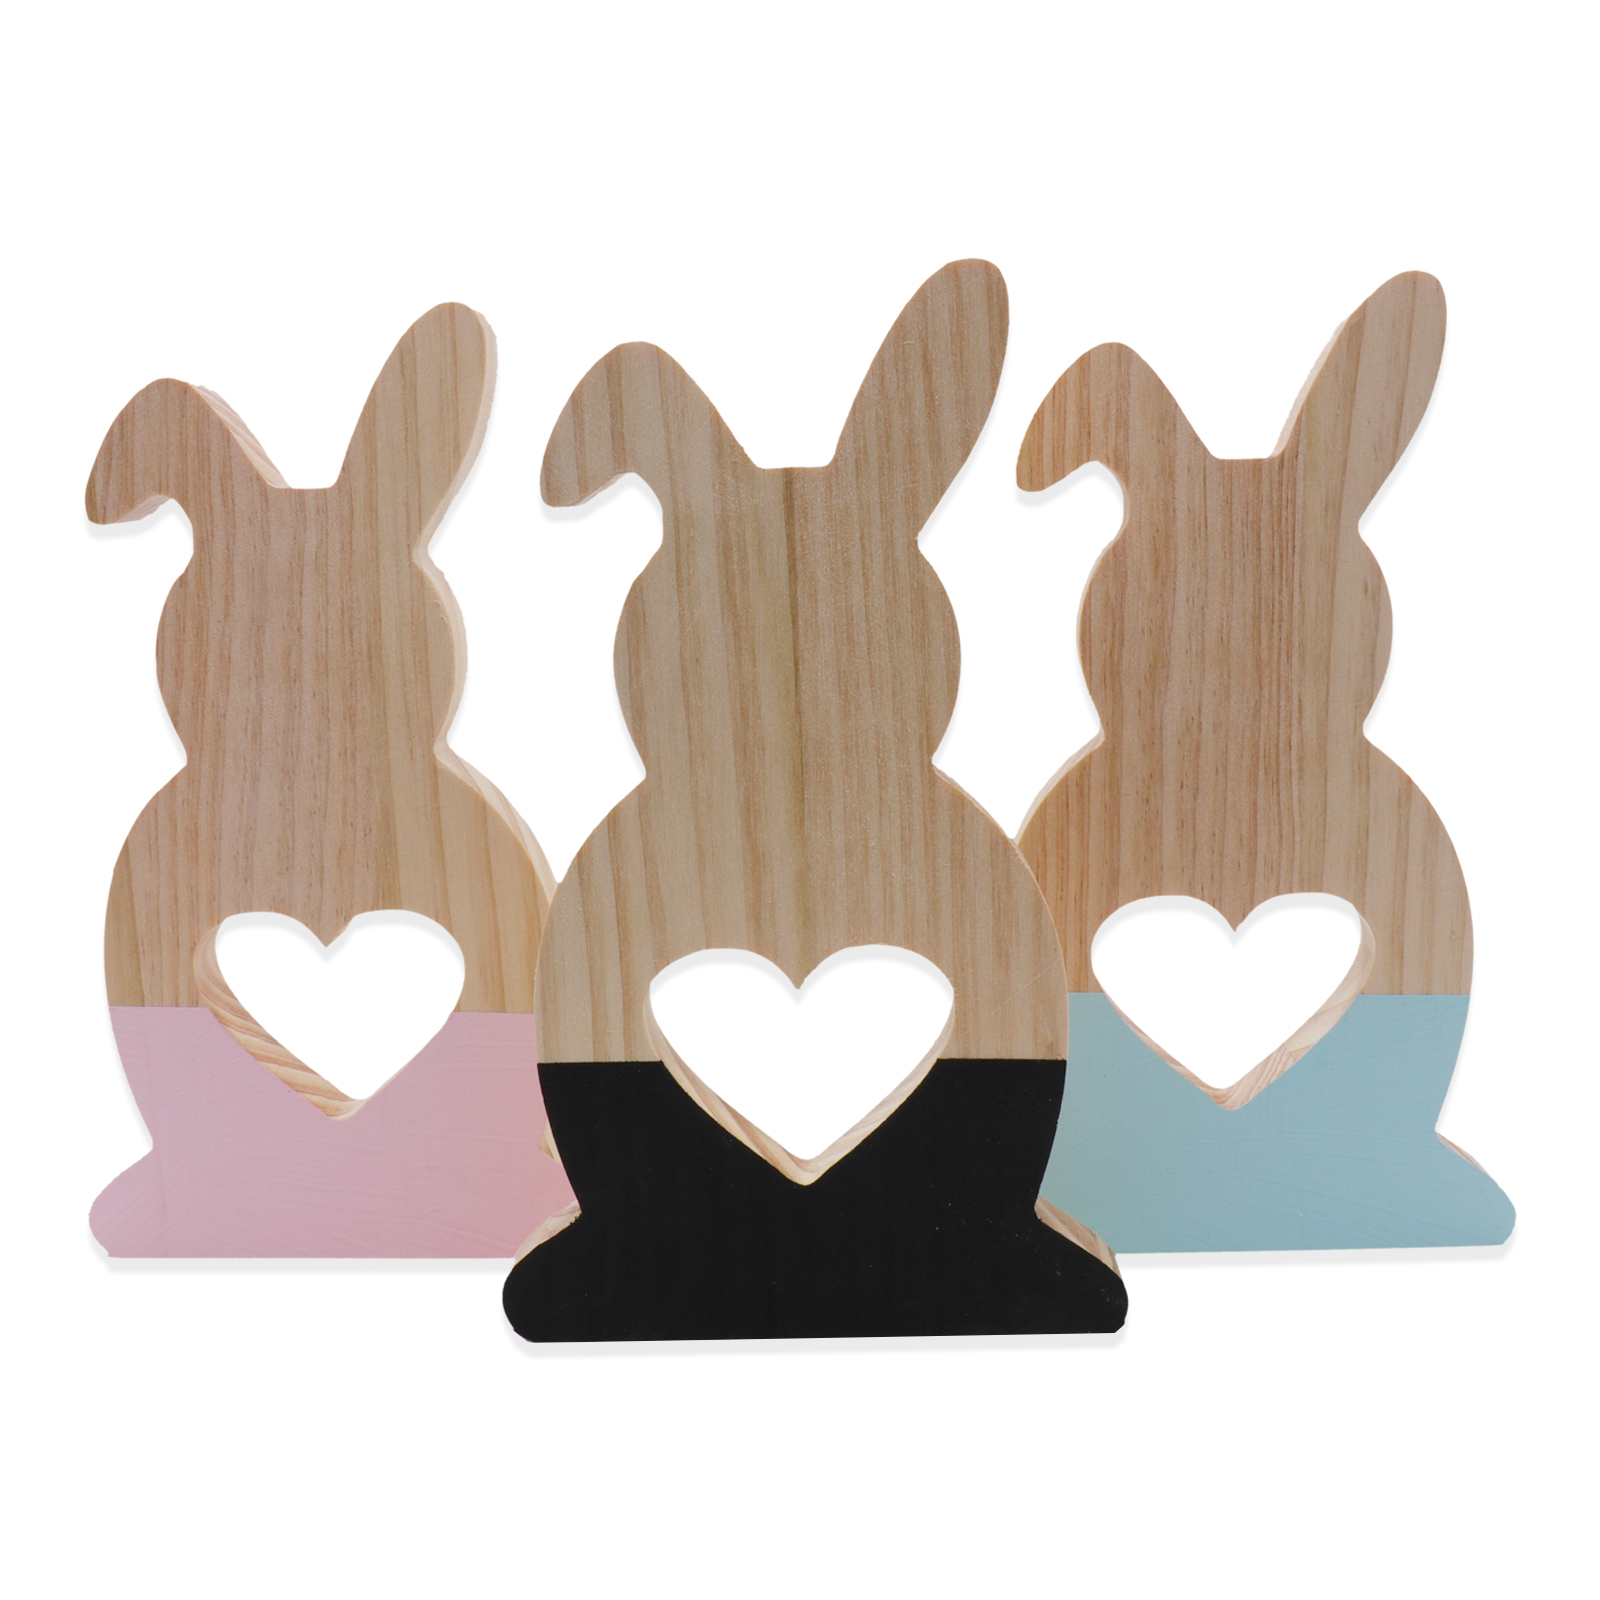 2018 New Arrivals Hollow Love Wooden Cut Rabbit Ear Ornament Craft Home Decoration For European Creative kids Toy Gifts